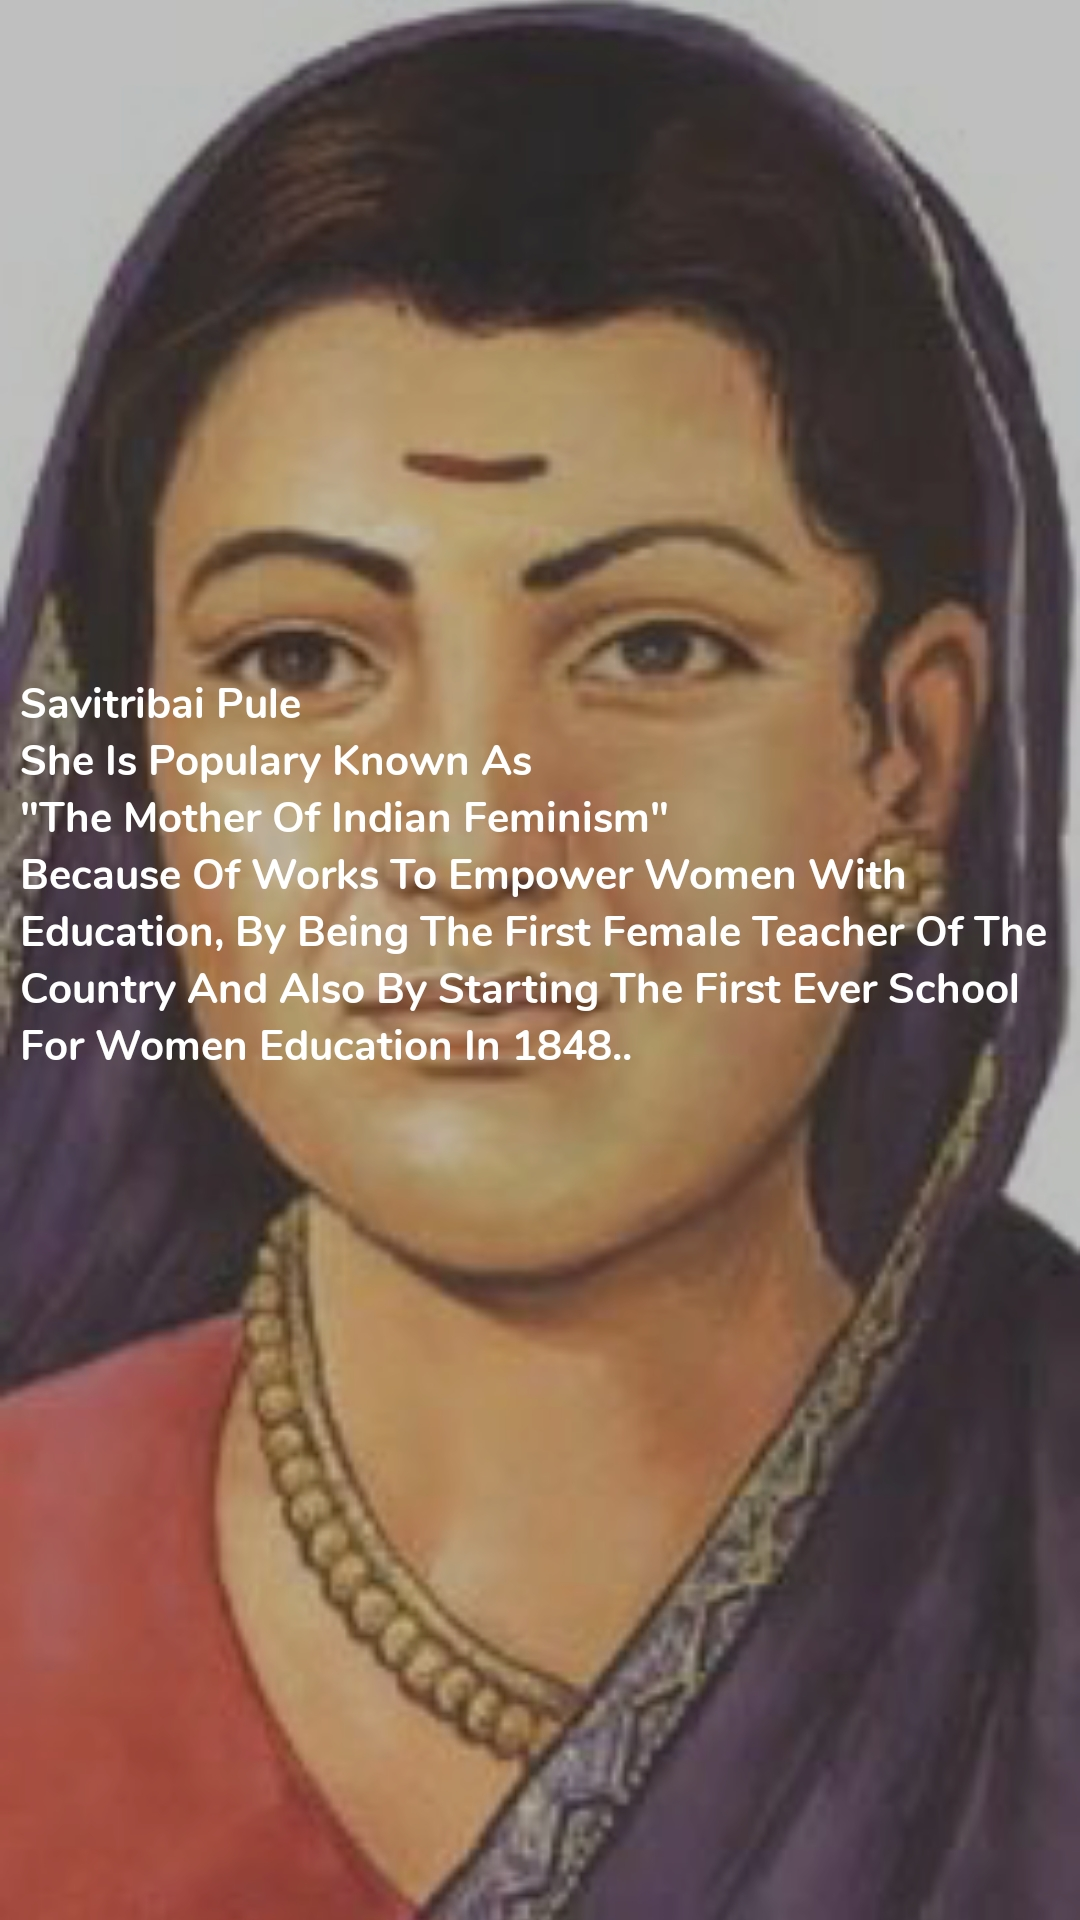 """Savitribai Pule  She Is Populary Known As  """"The Mother Of Indian Feminism"""" Because Of Works To Empower Women With Education, By Being The First Female Teacher Of The Country And Also By Starting The First Ever School For Women Education In 1848.."""